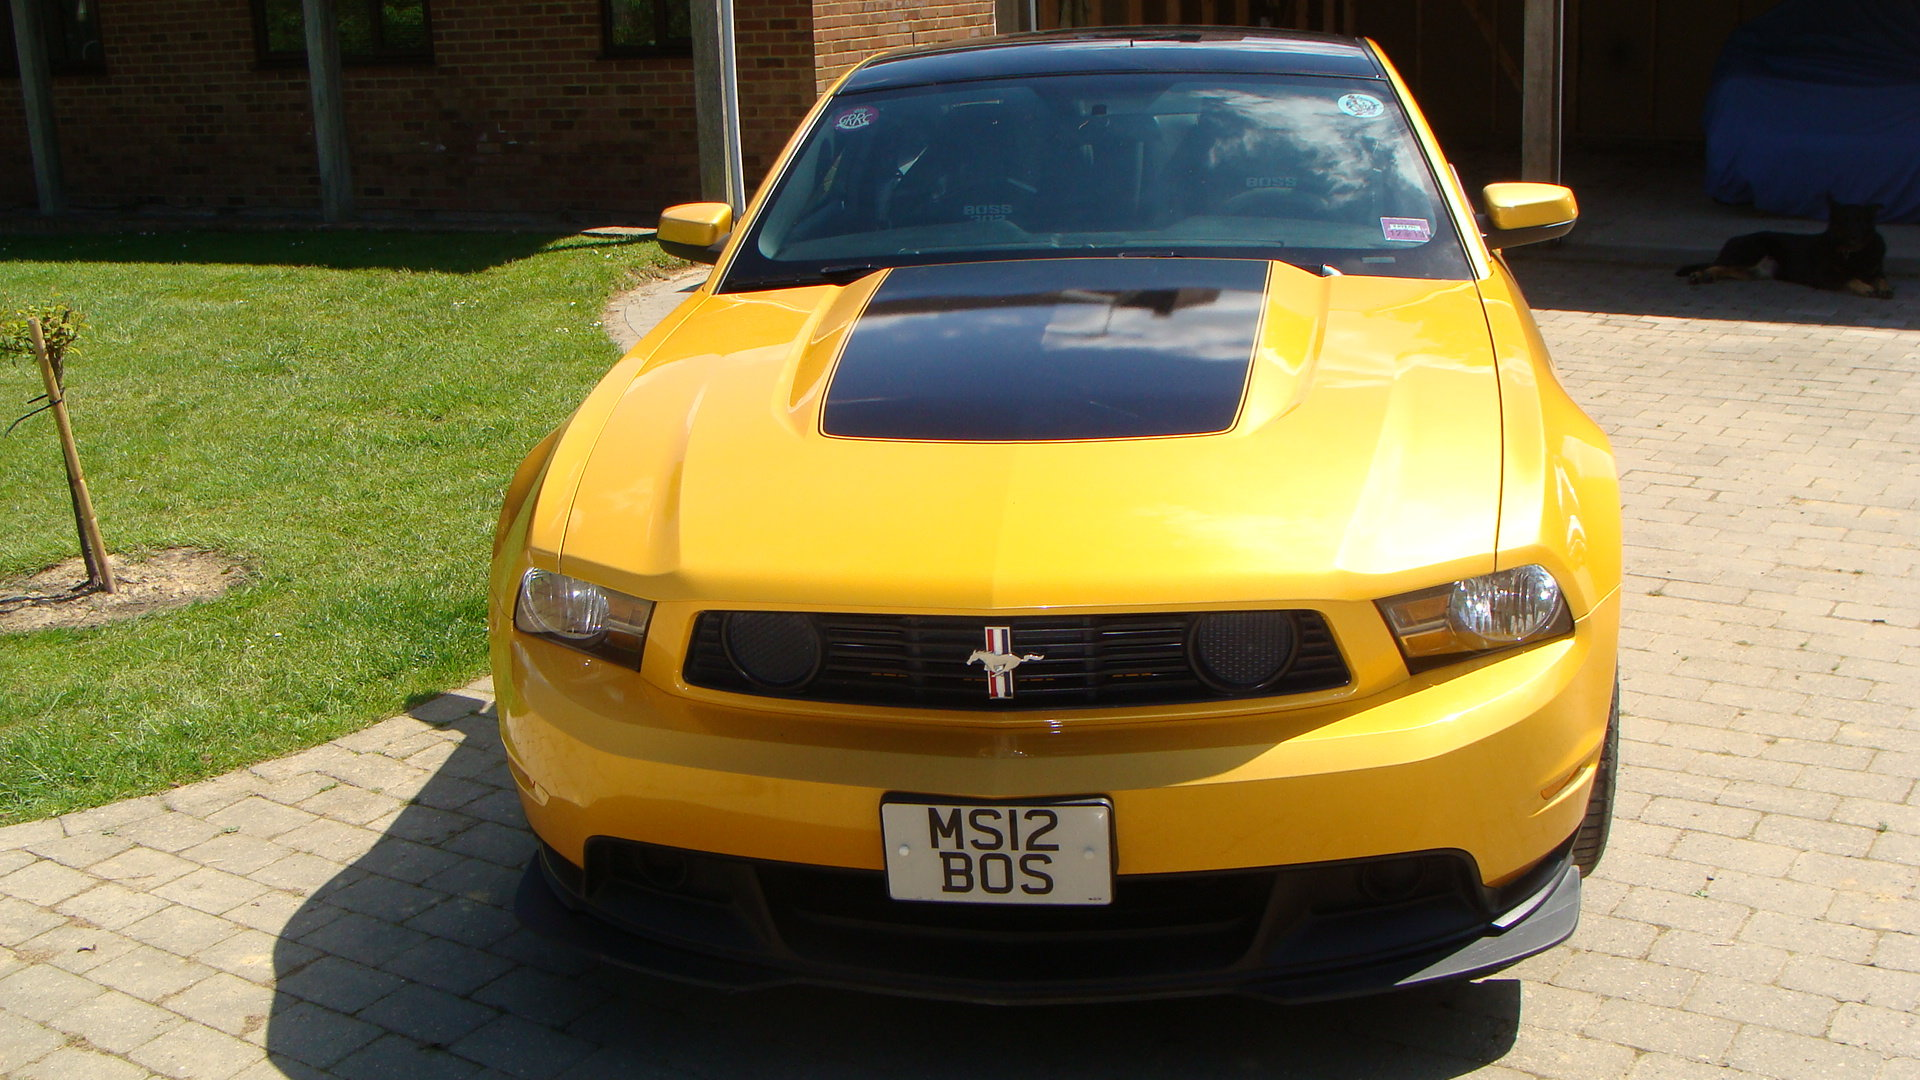 Mustang Boss 302 2012 Limited Edition 444bhp  For Sale (picture 3 of 6)